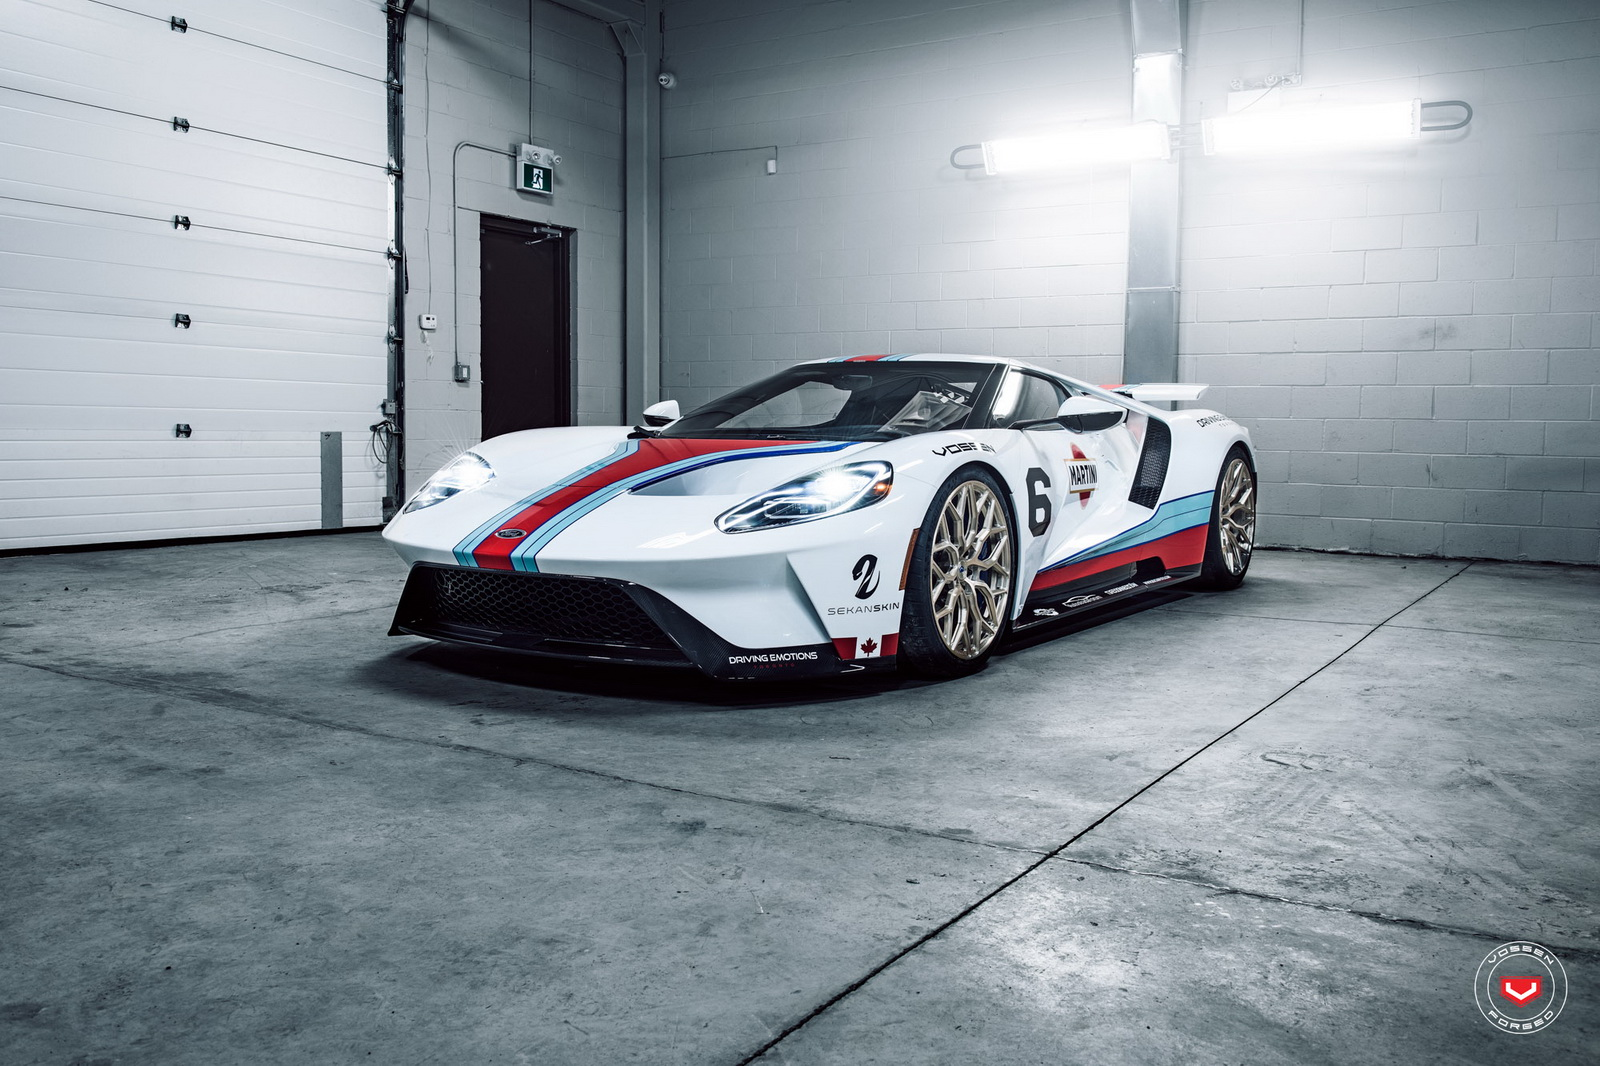 ford-gt-martini-livery-vossen-wheels-12